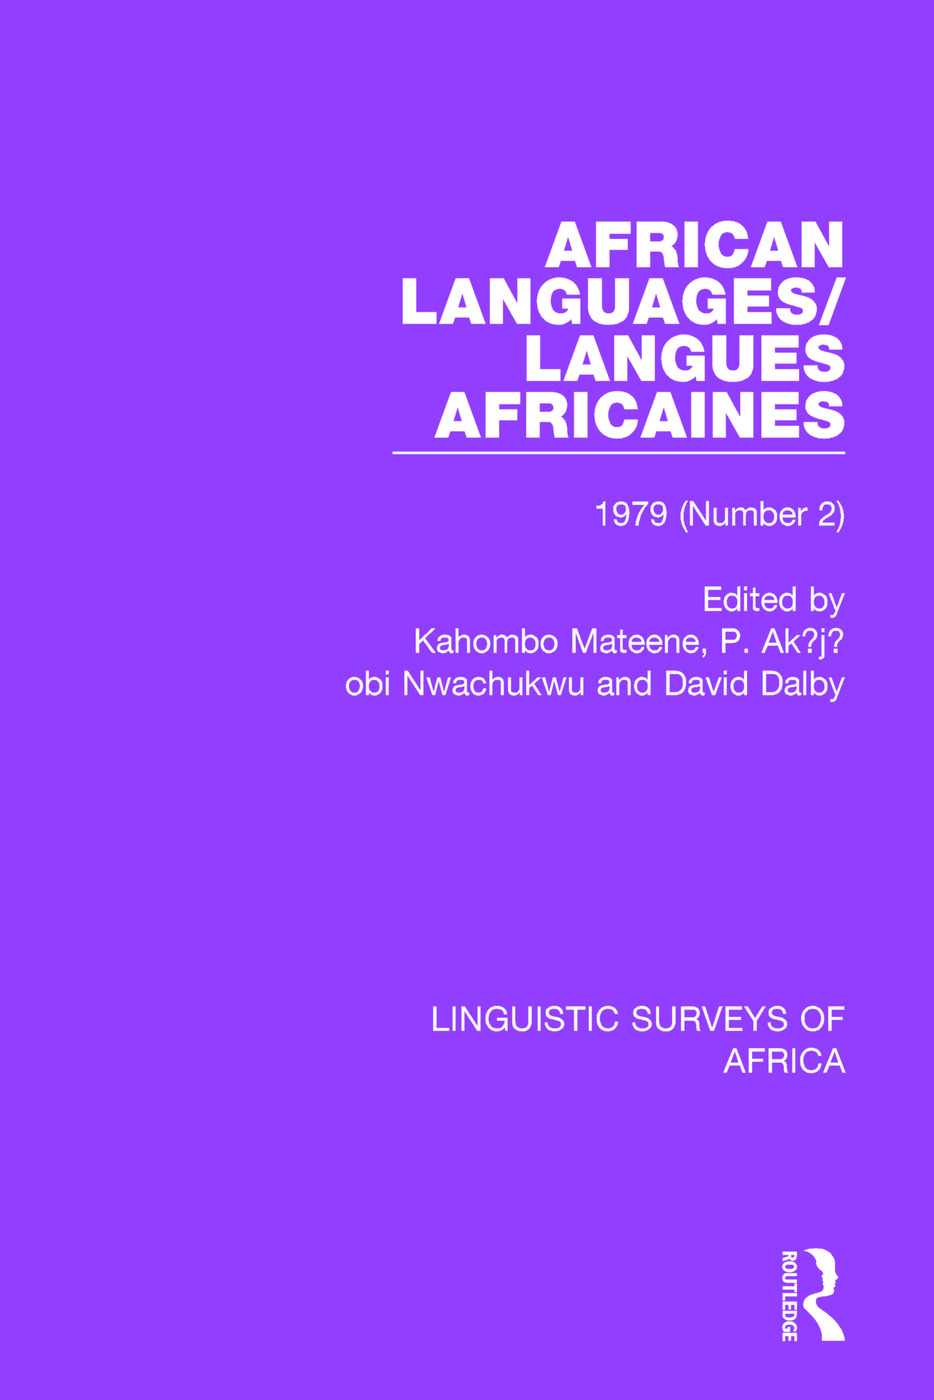 African Languages/Langues Africaines: Volume 5 (2) 1979 book cover